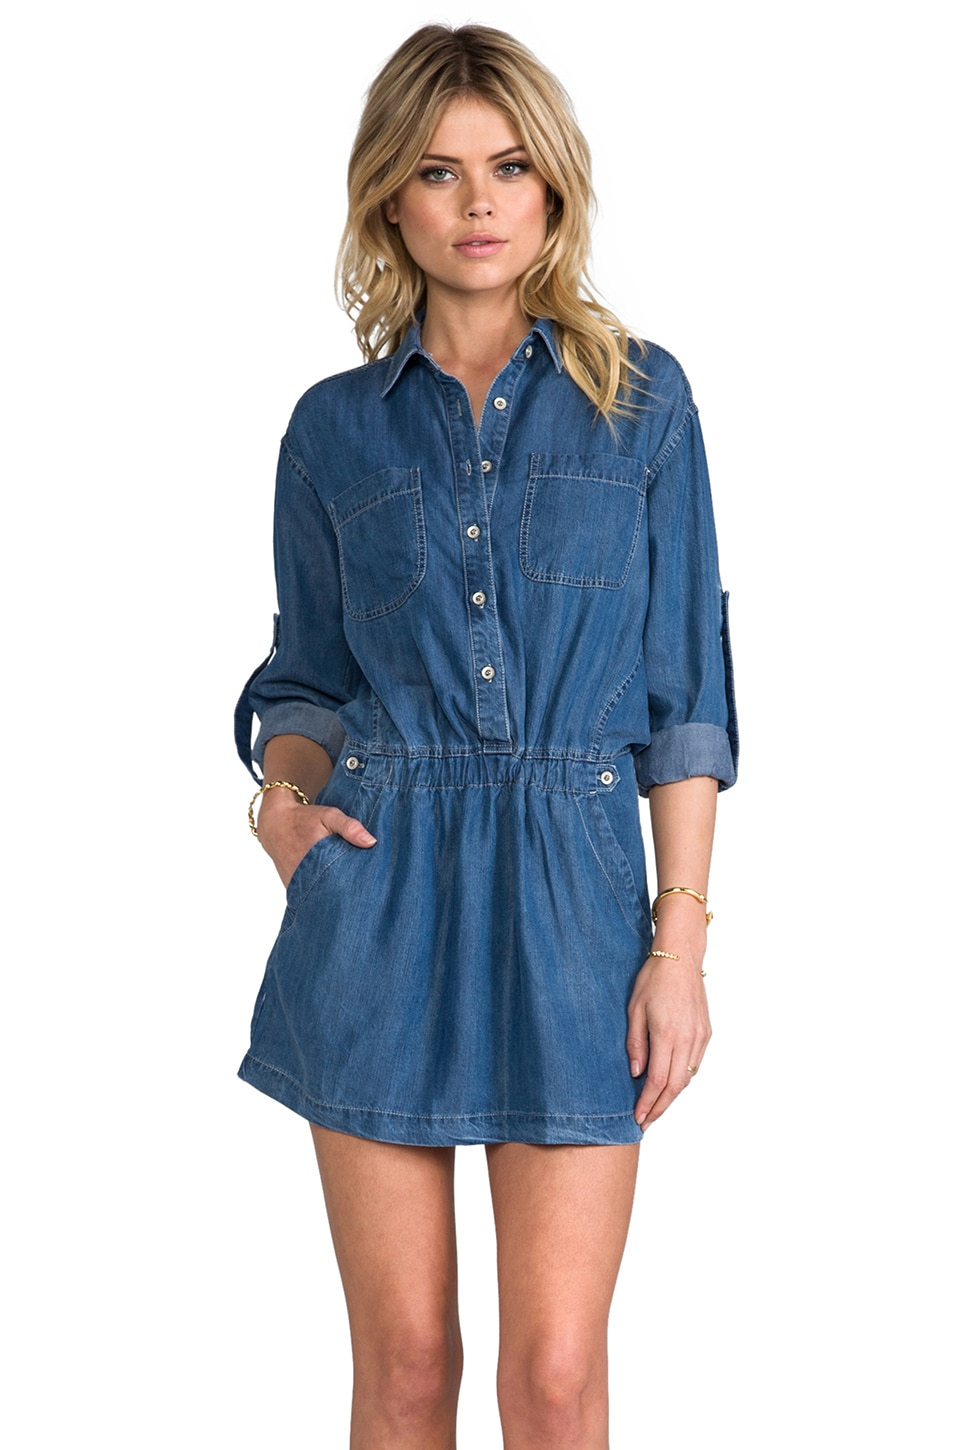 Funktional Blue Hour Shirt Dress in Denim